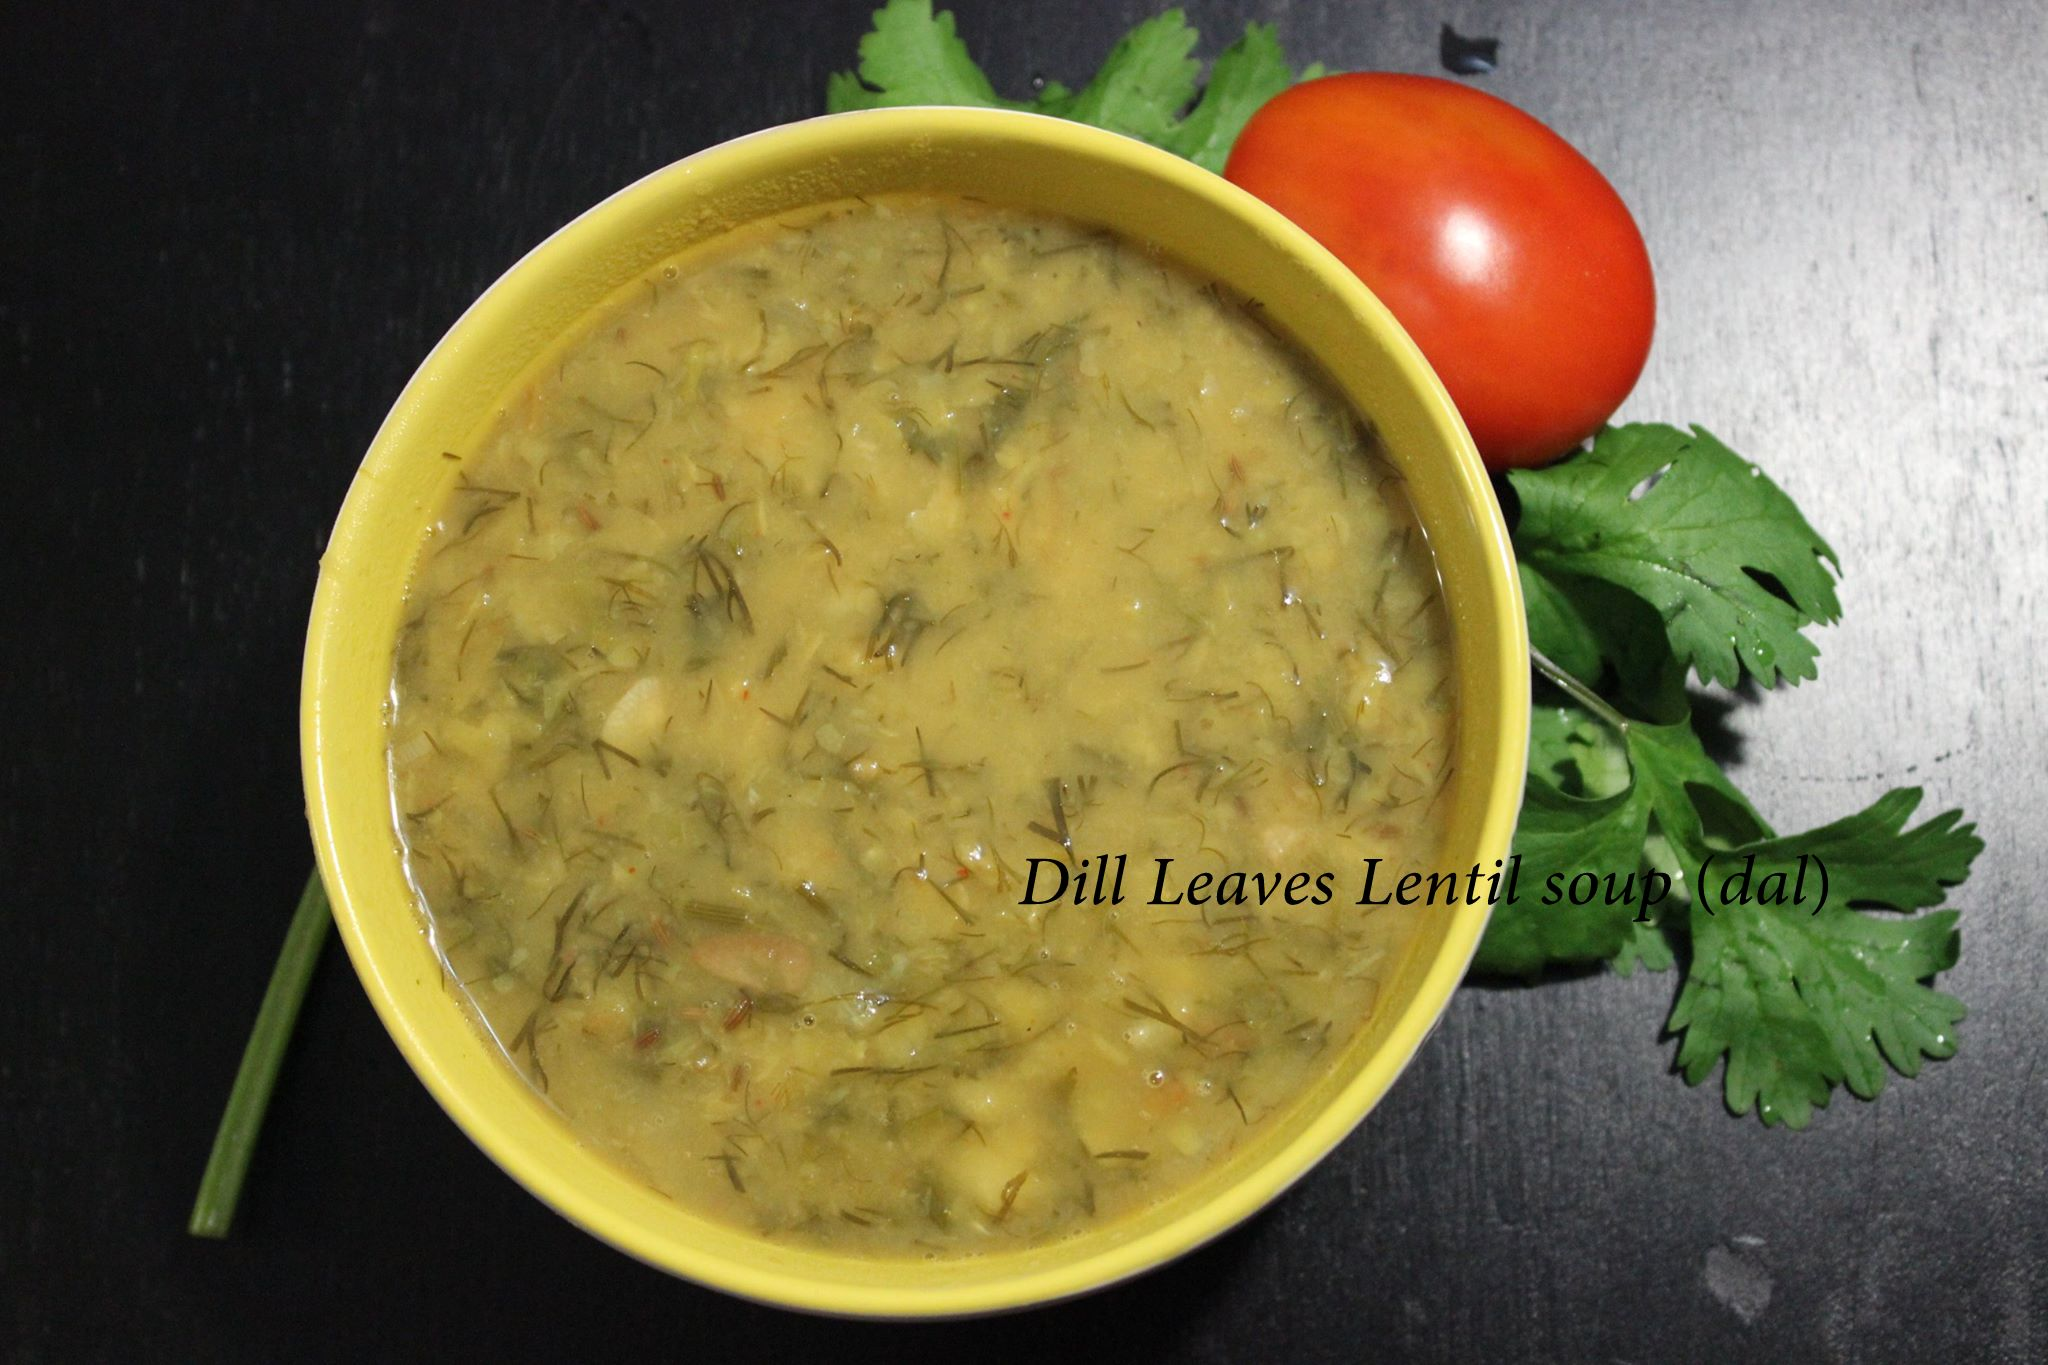 Dill Leaves Lentil soup (dal)